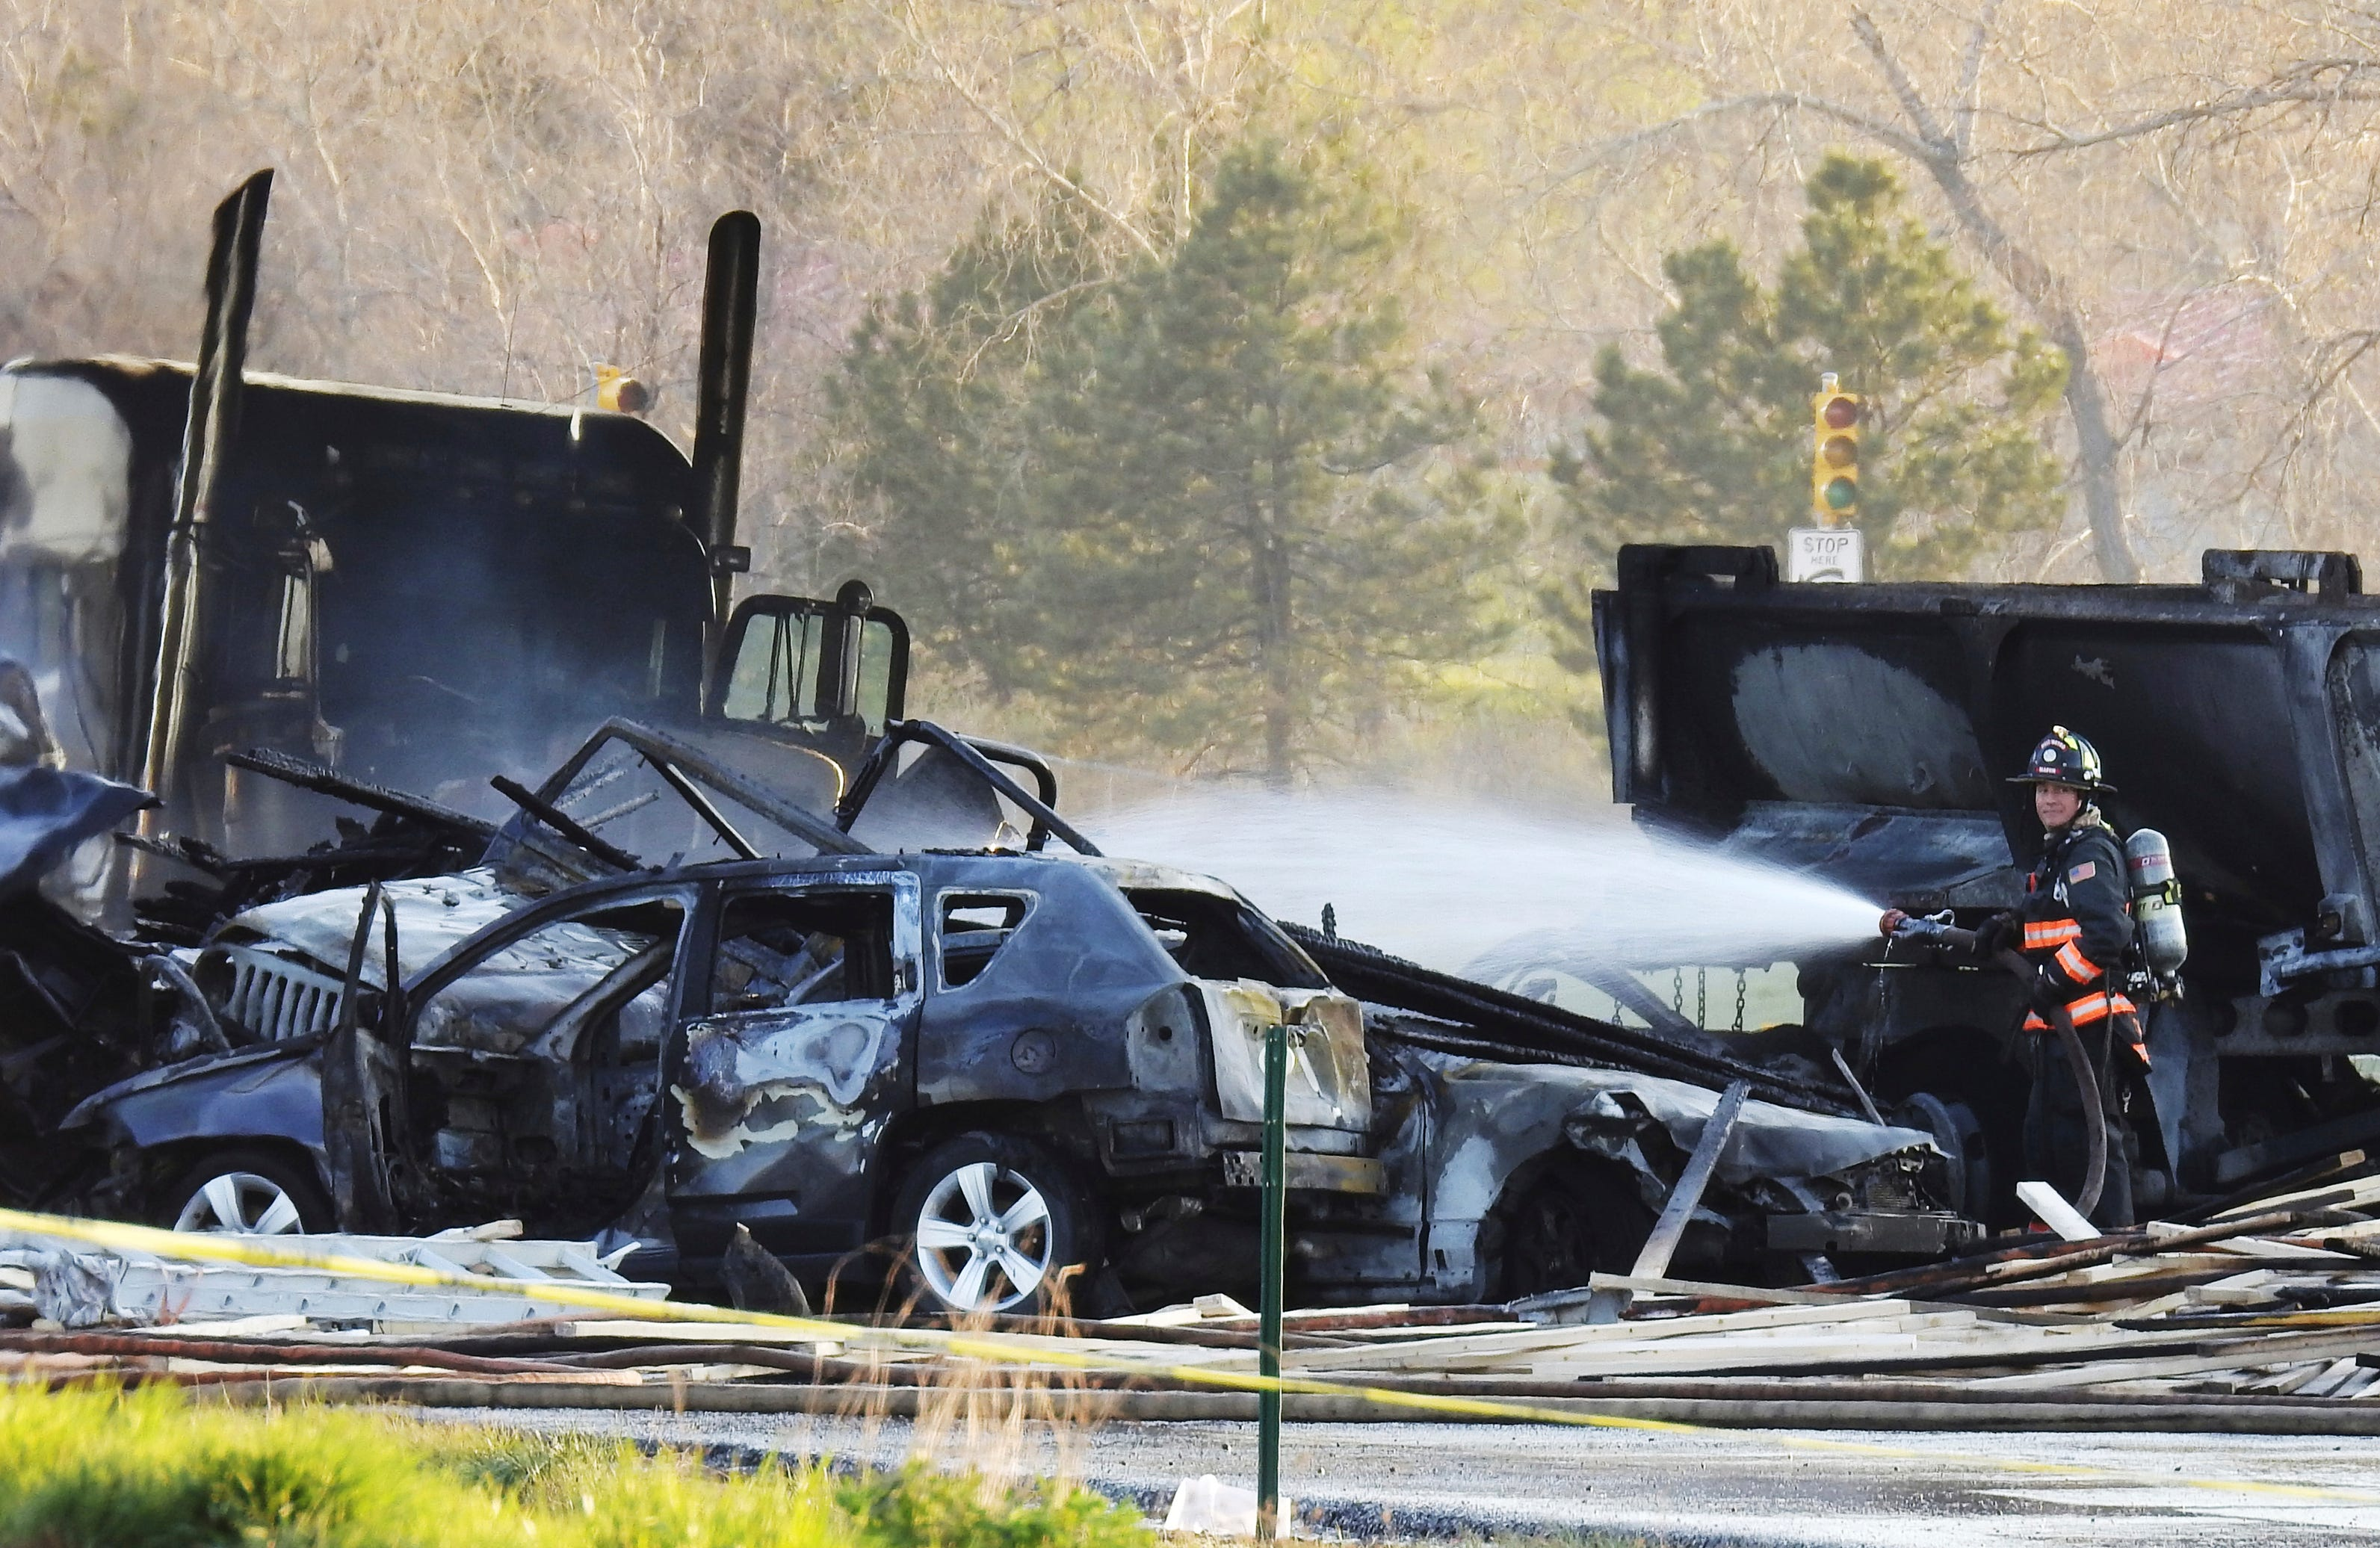 A firefighter sprays water on the wreckage in Lakewood, Colo., after a deadly collision on Interstate 70 near the Colorado Mills Parkway, April 25, 2019.